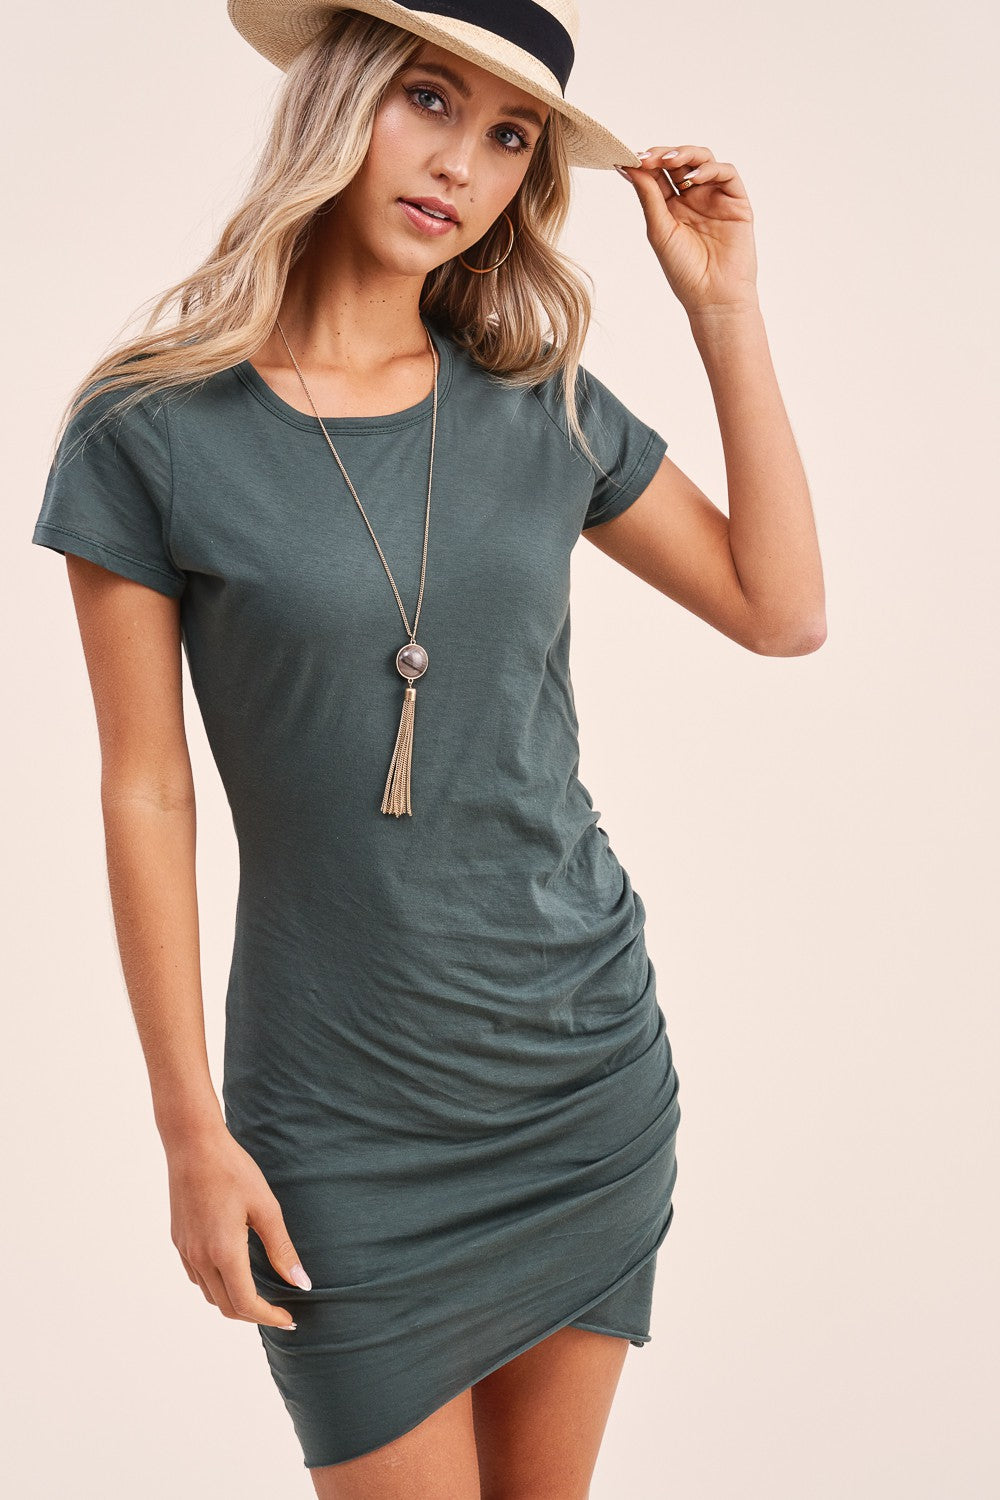 Let's Get Away Mini T-Shirt Dress In Forest-[option4]-[option5]-[option6]-[option7]-[option8]-Womens-Clothing-Shop